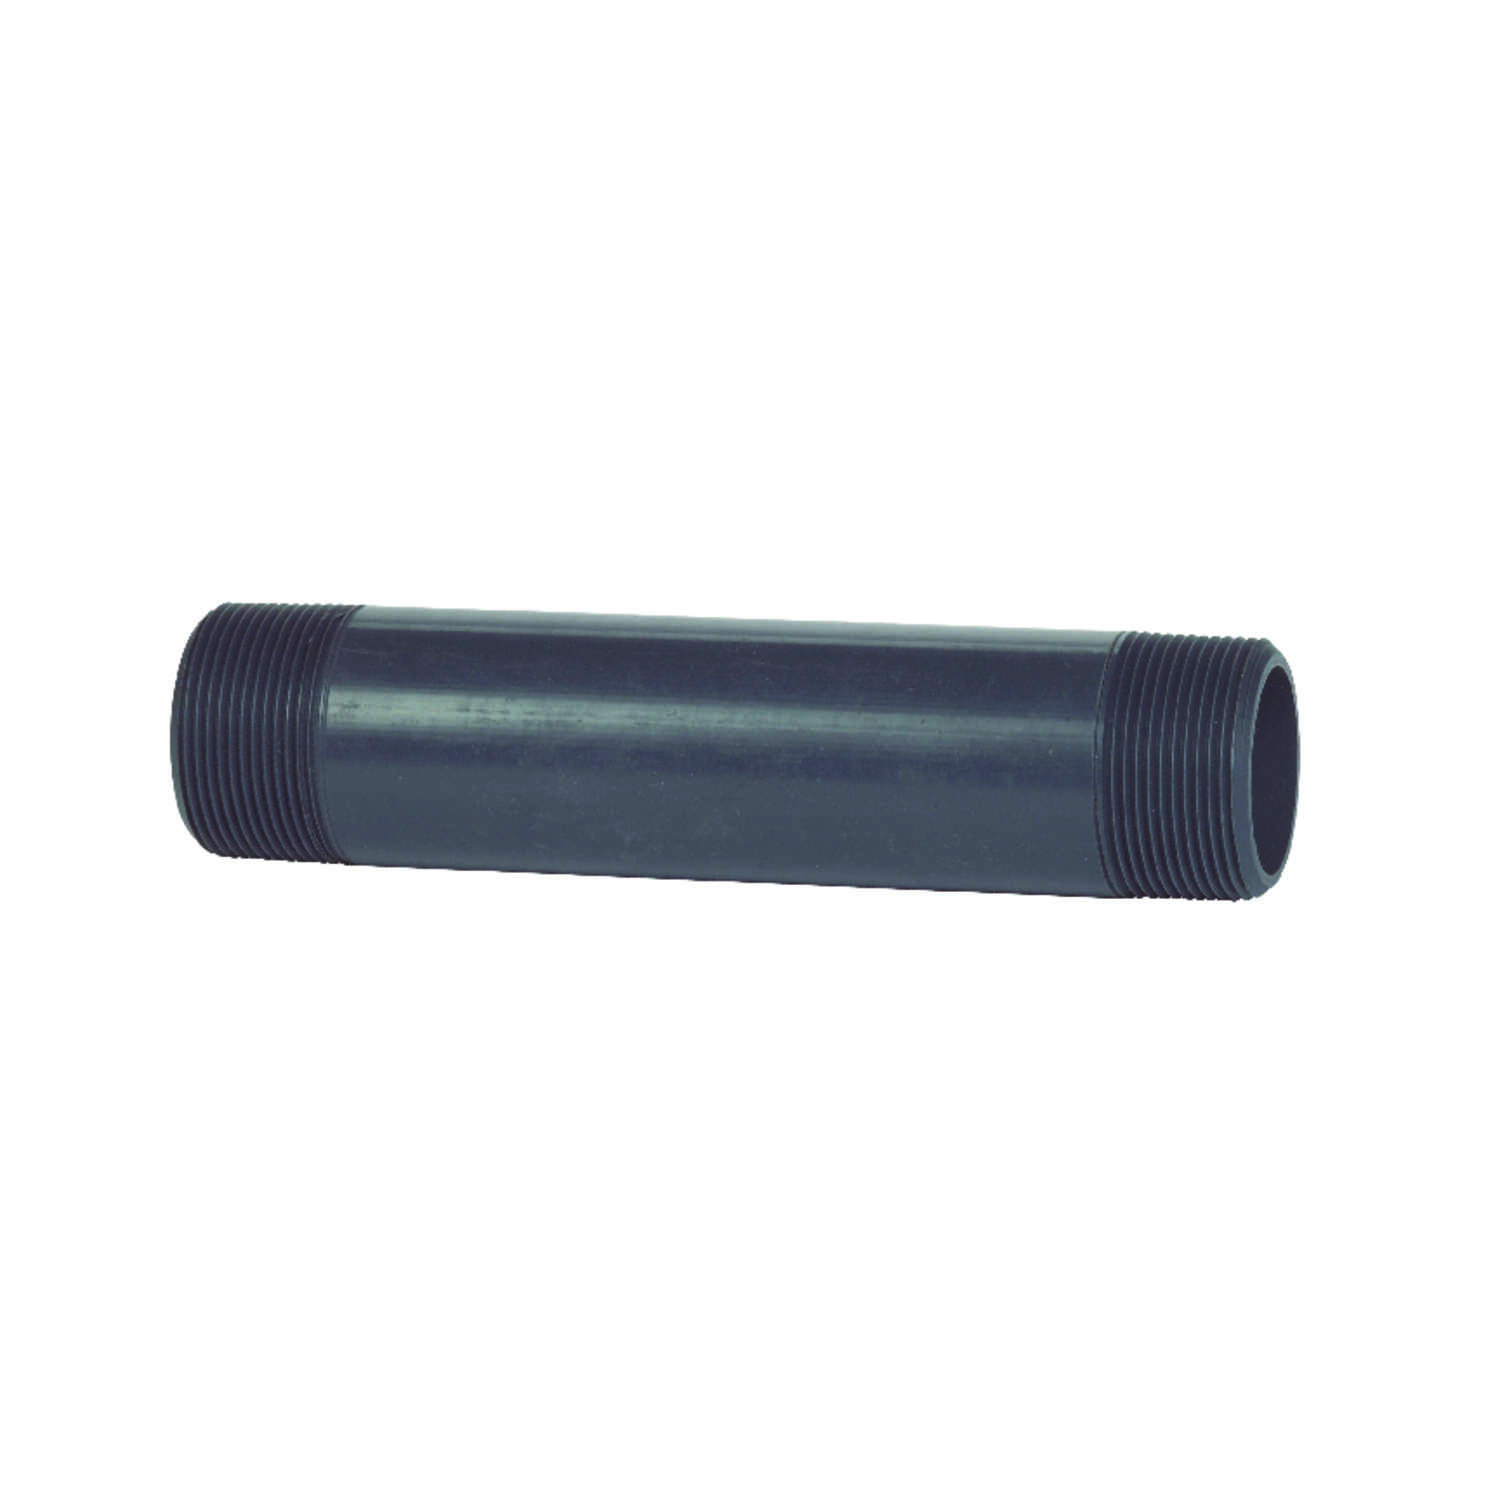 BK Products  Schedule 80  3/4 in. MPT   x 3/4 in. Dia. MPT  PVC  For Pressure Applications Pipe Nipp